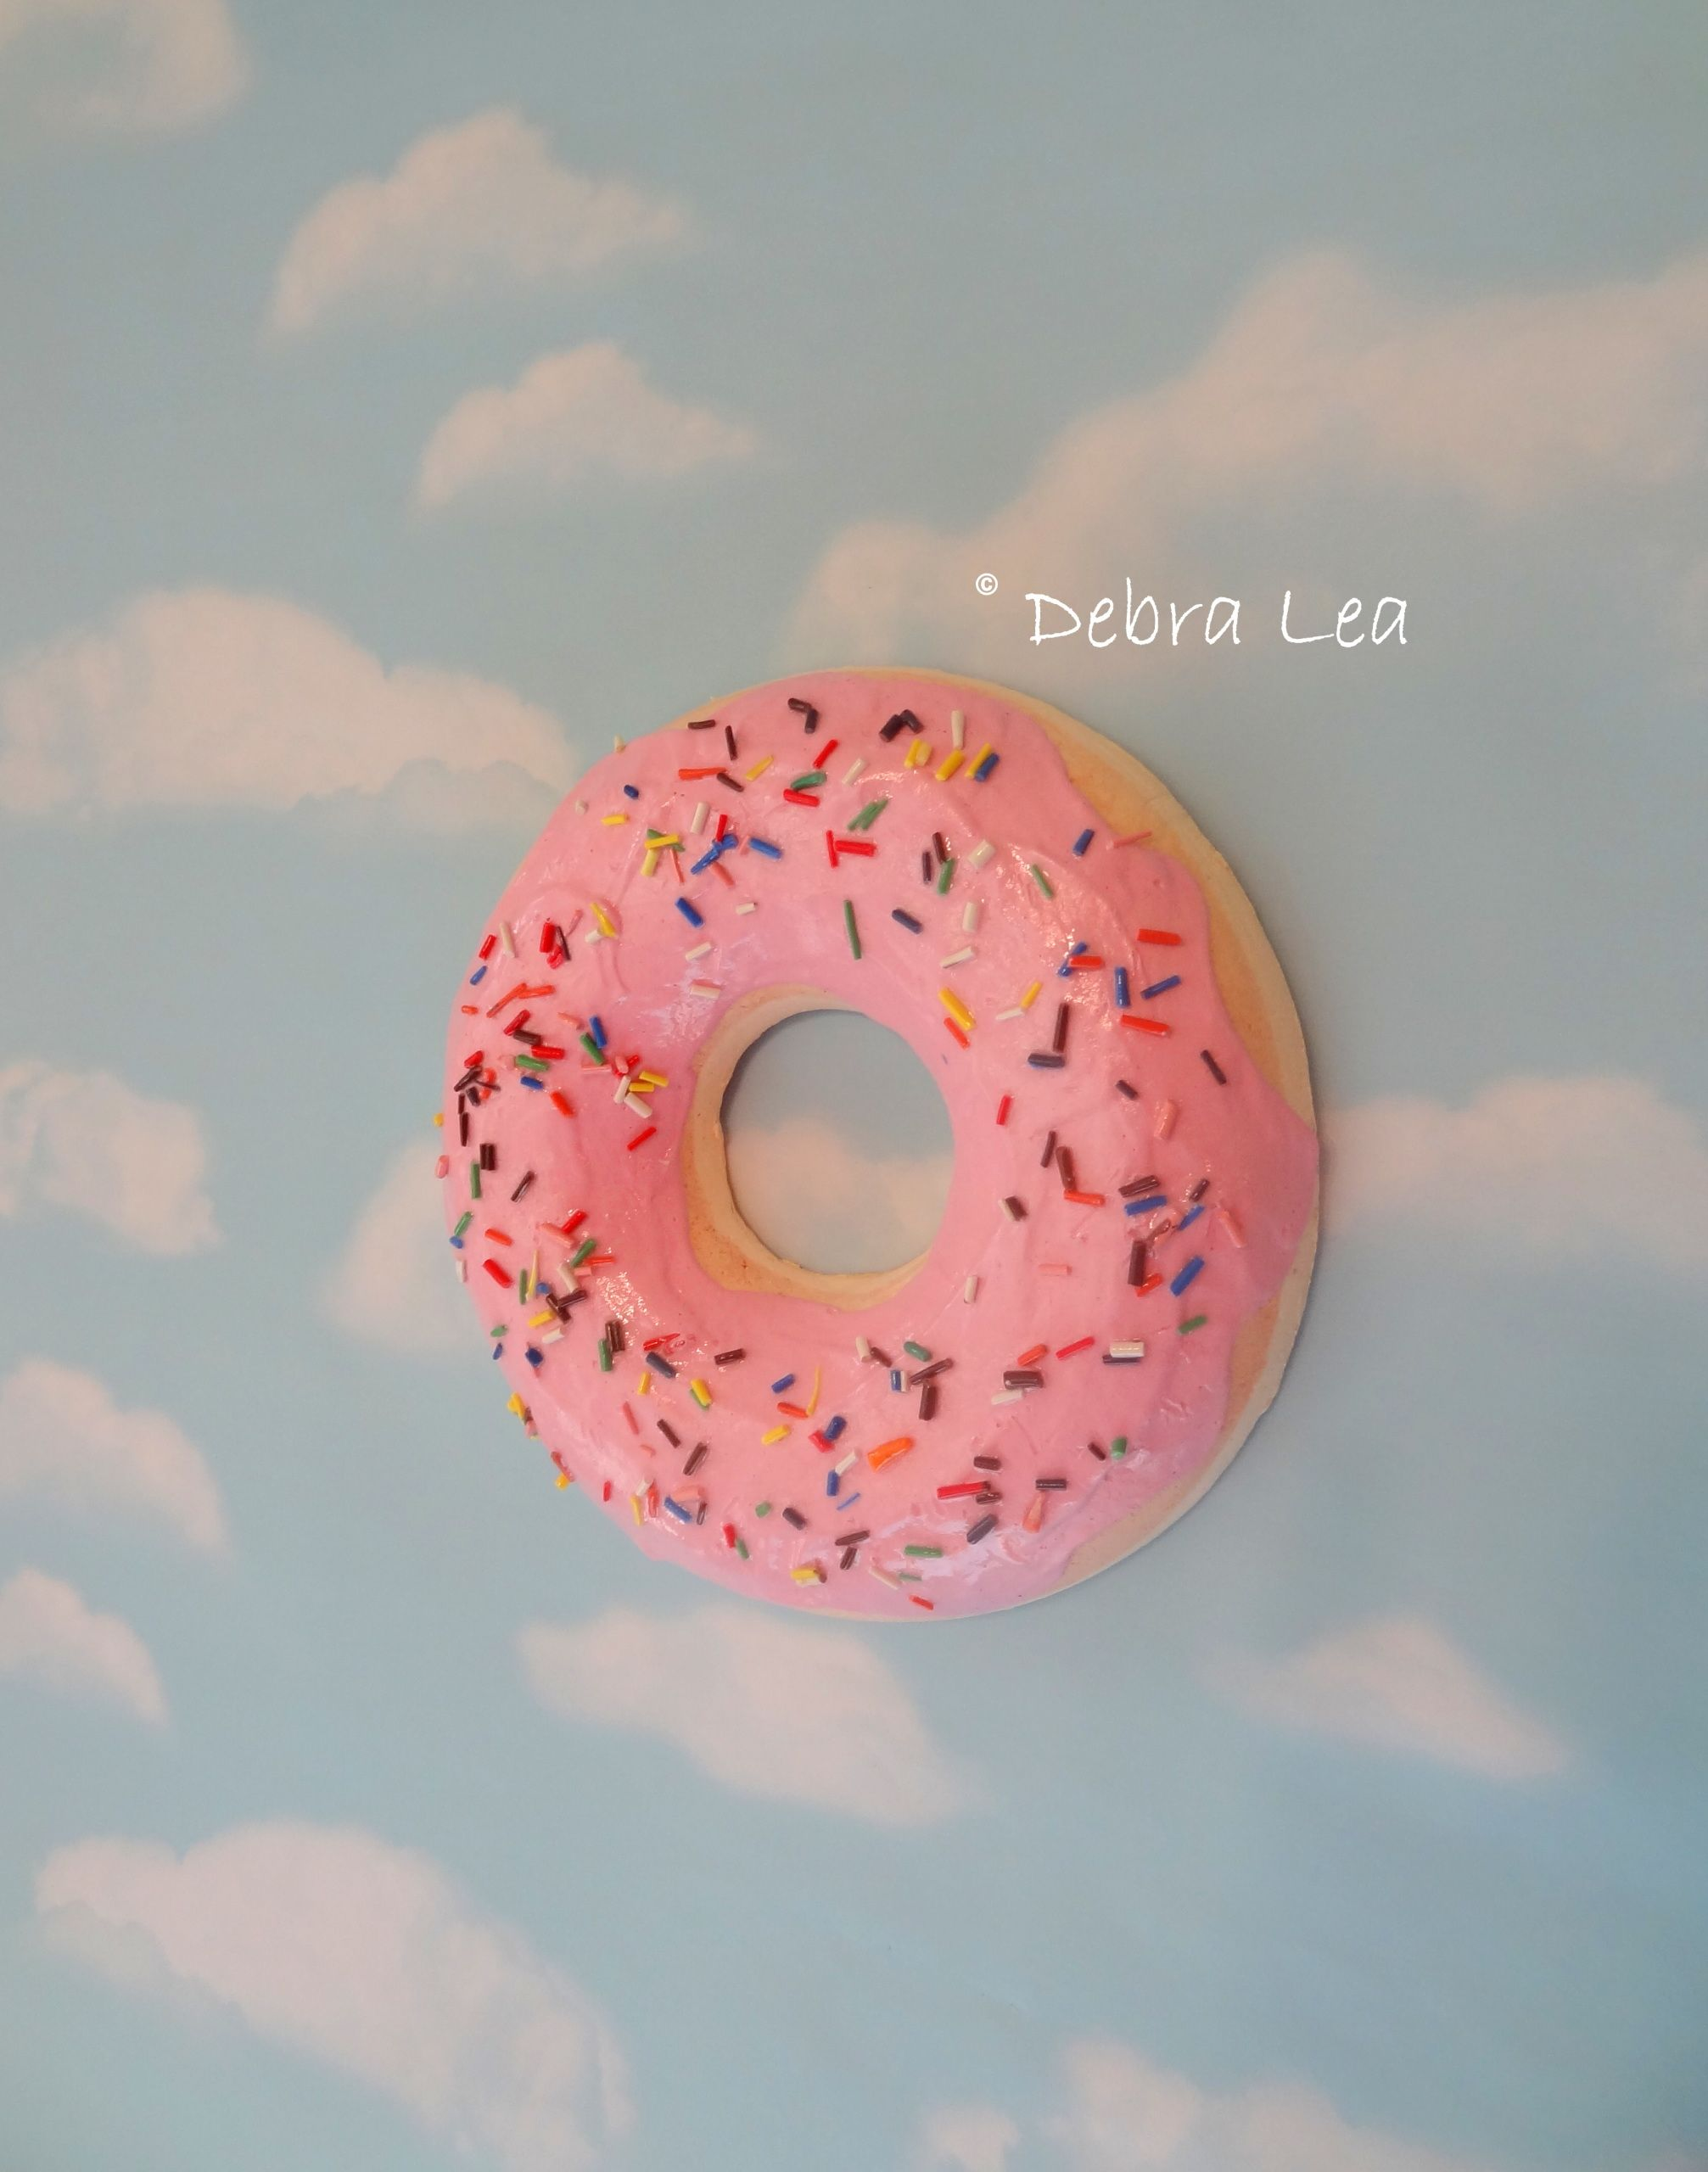 Giant Faux Donut Fake Doughnut Pastel Pink Frosting Sprinkles Wall